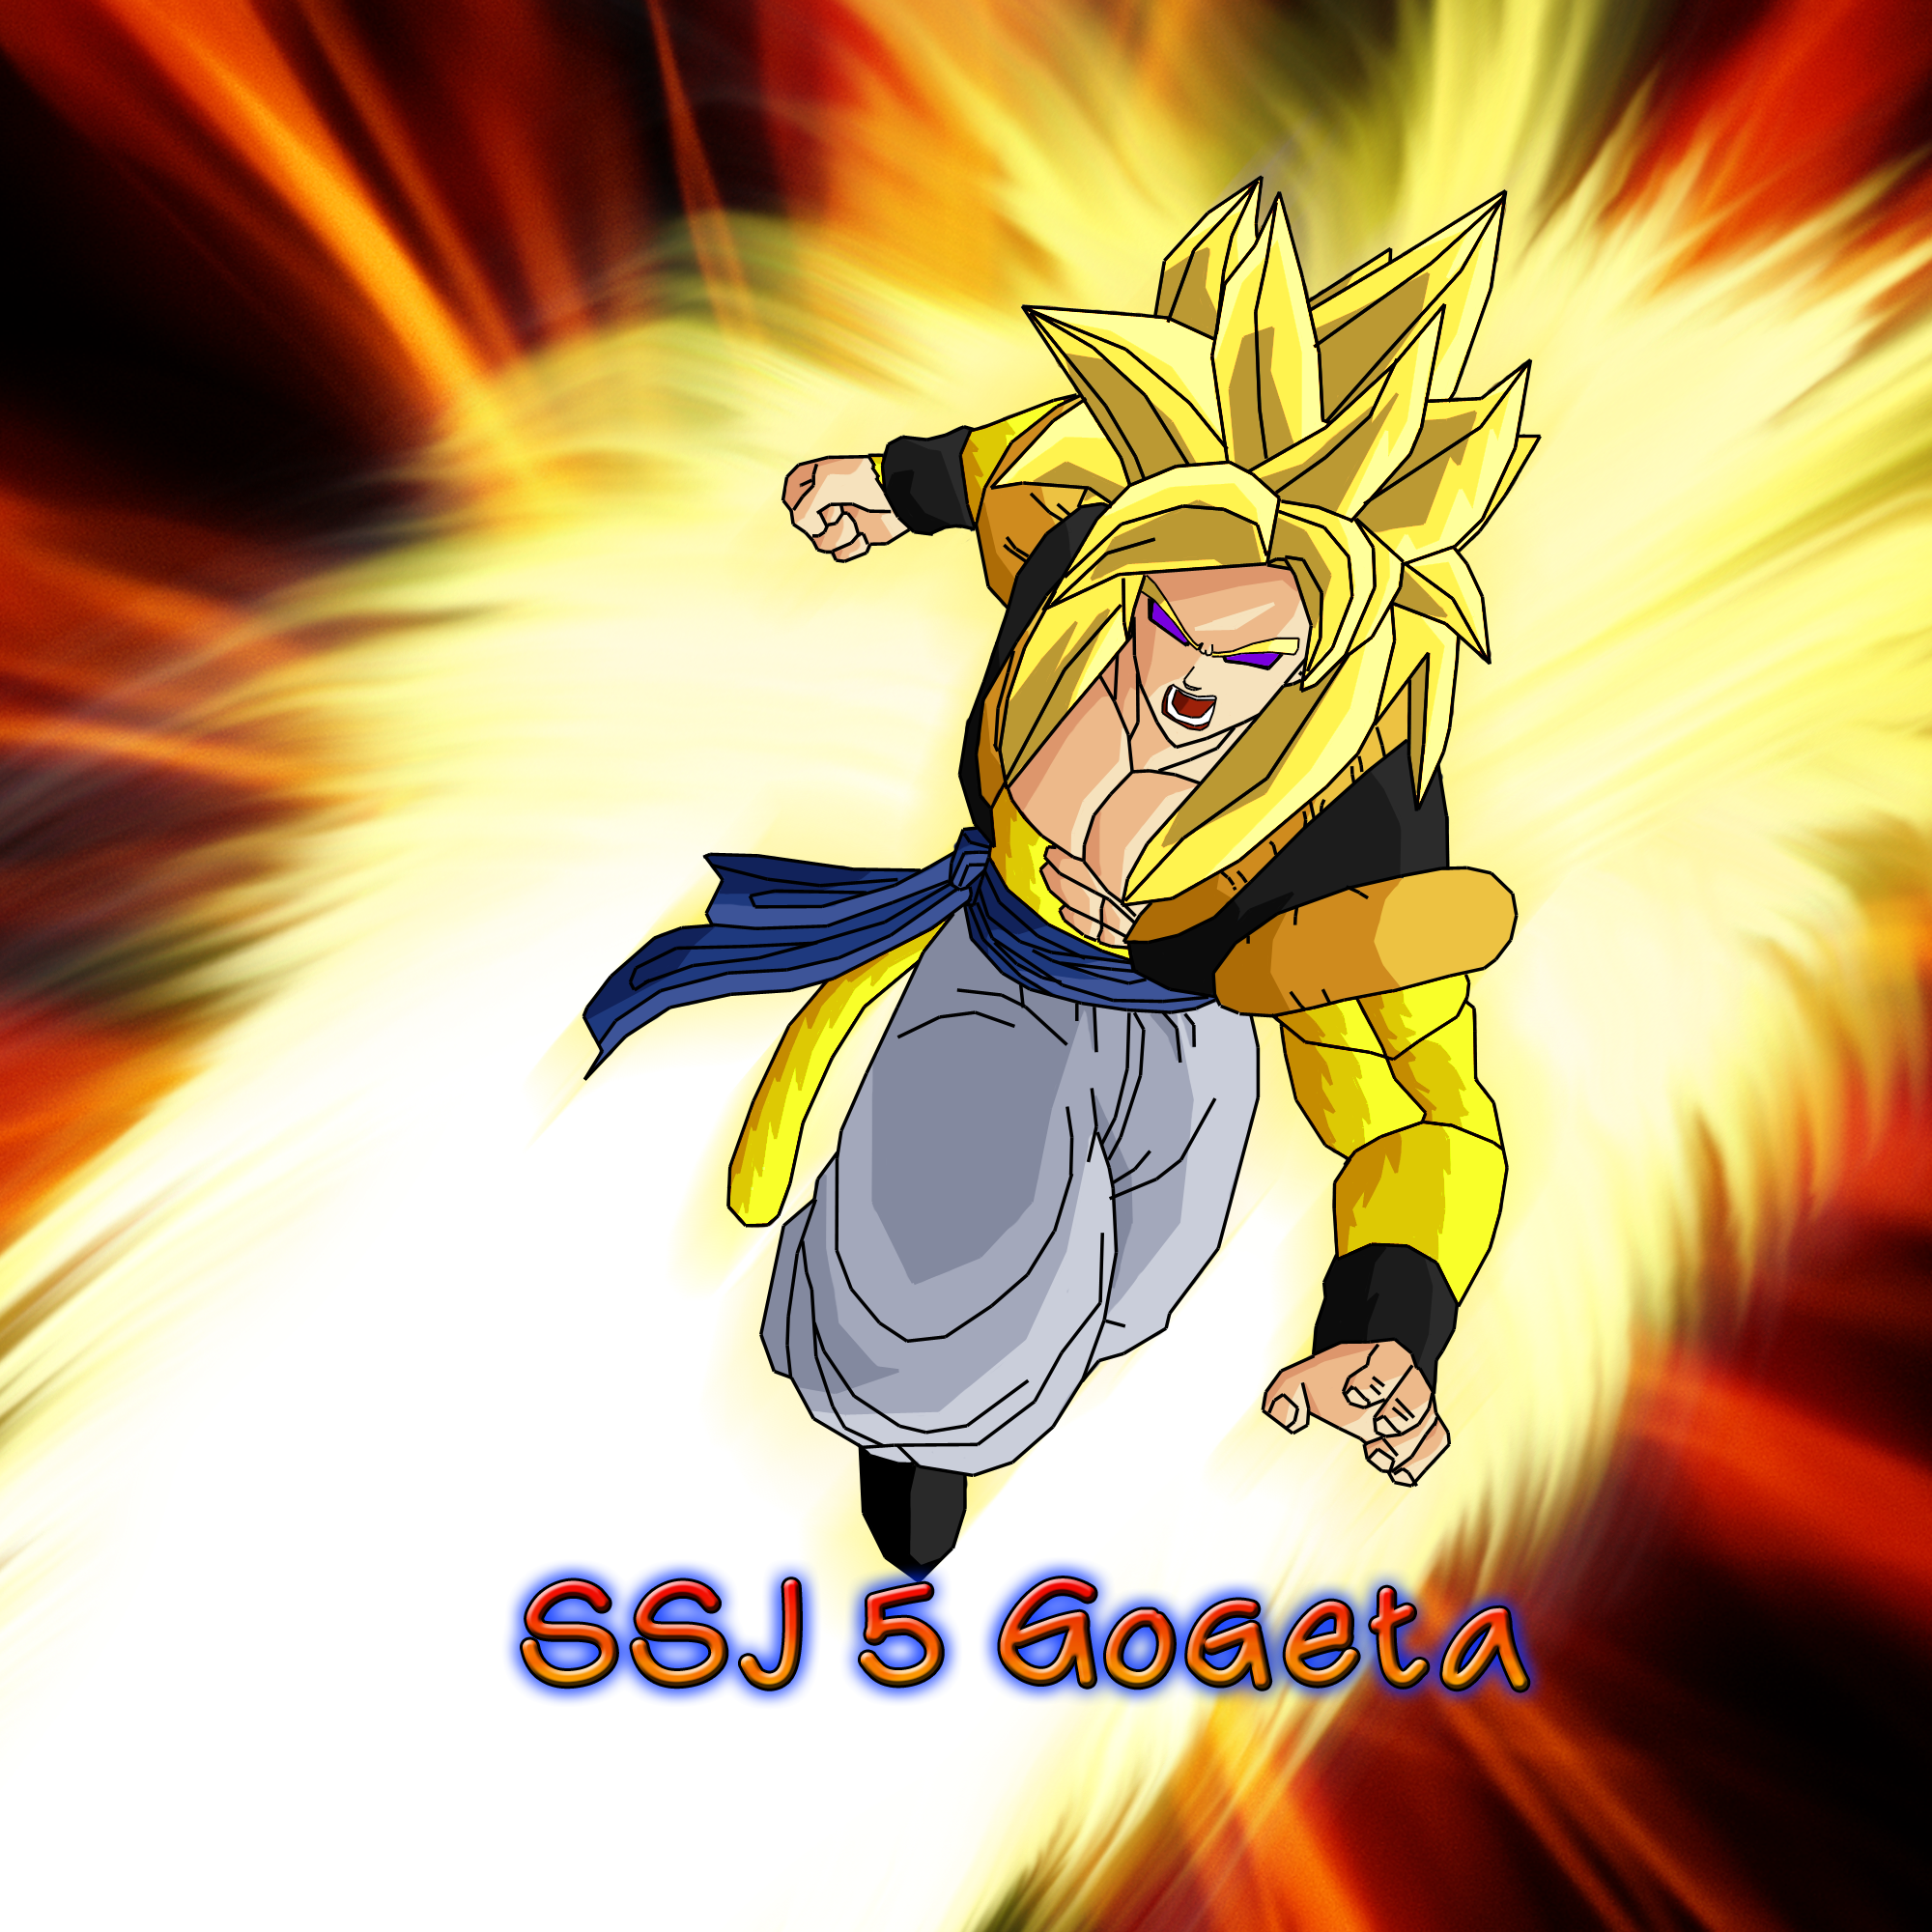 Gogeta wallpaper wallpapersafari for Deviantart wallpaper